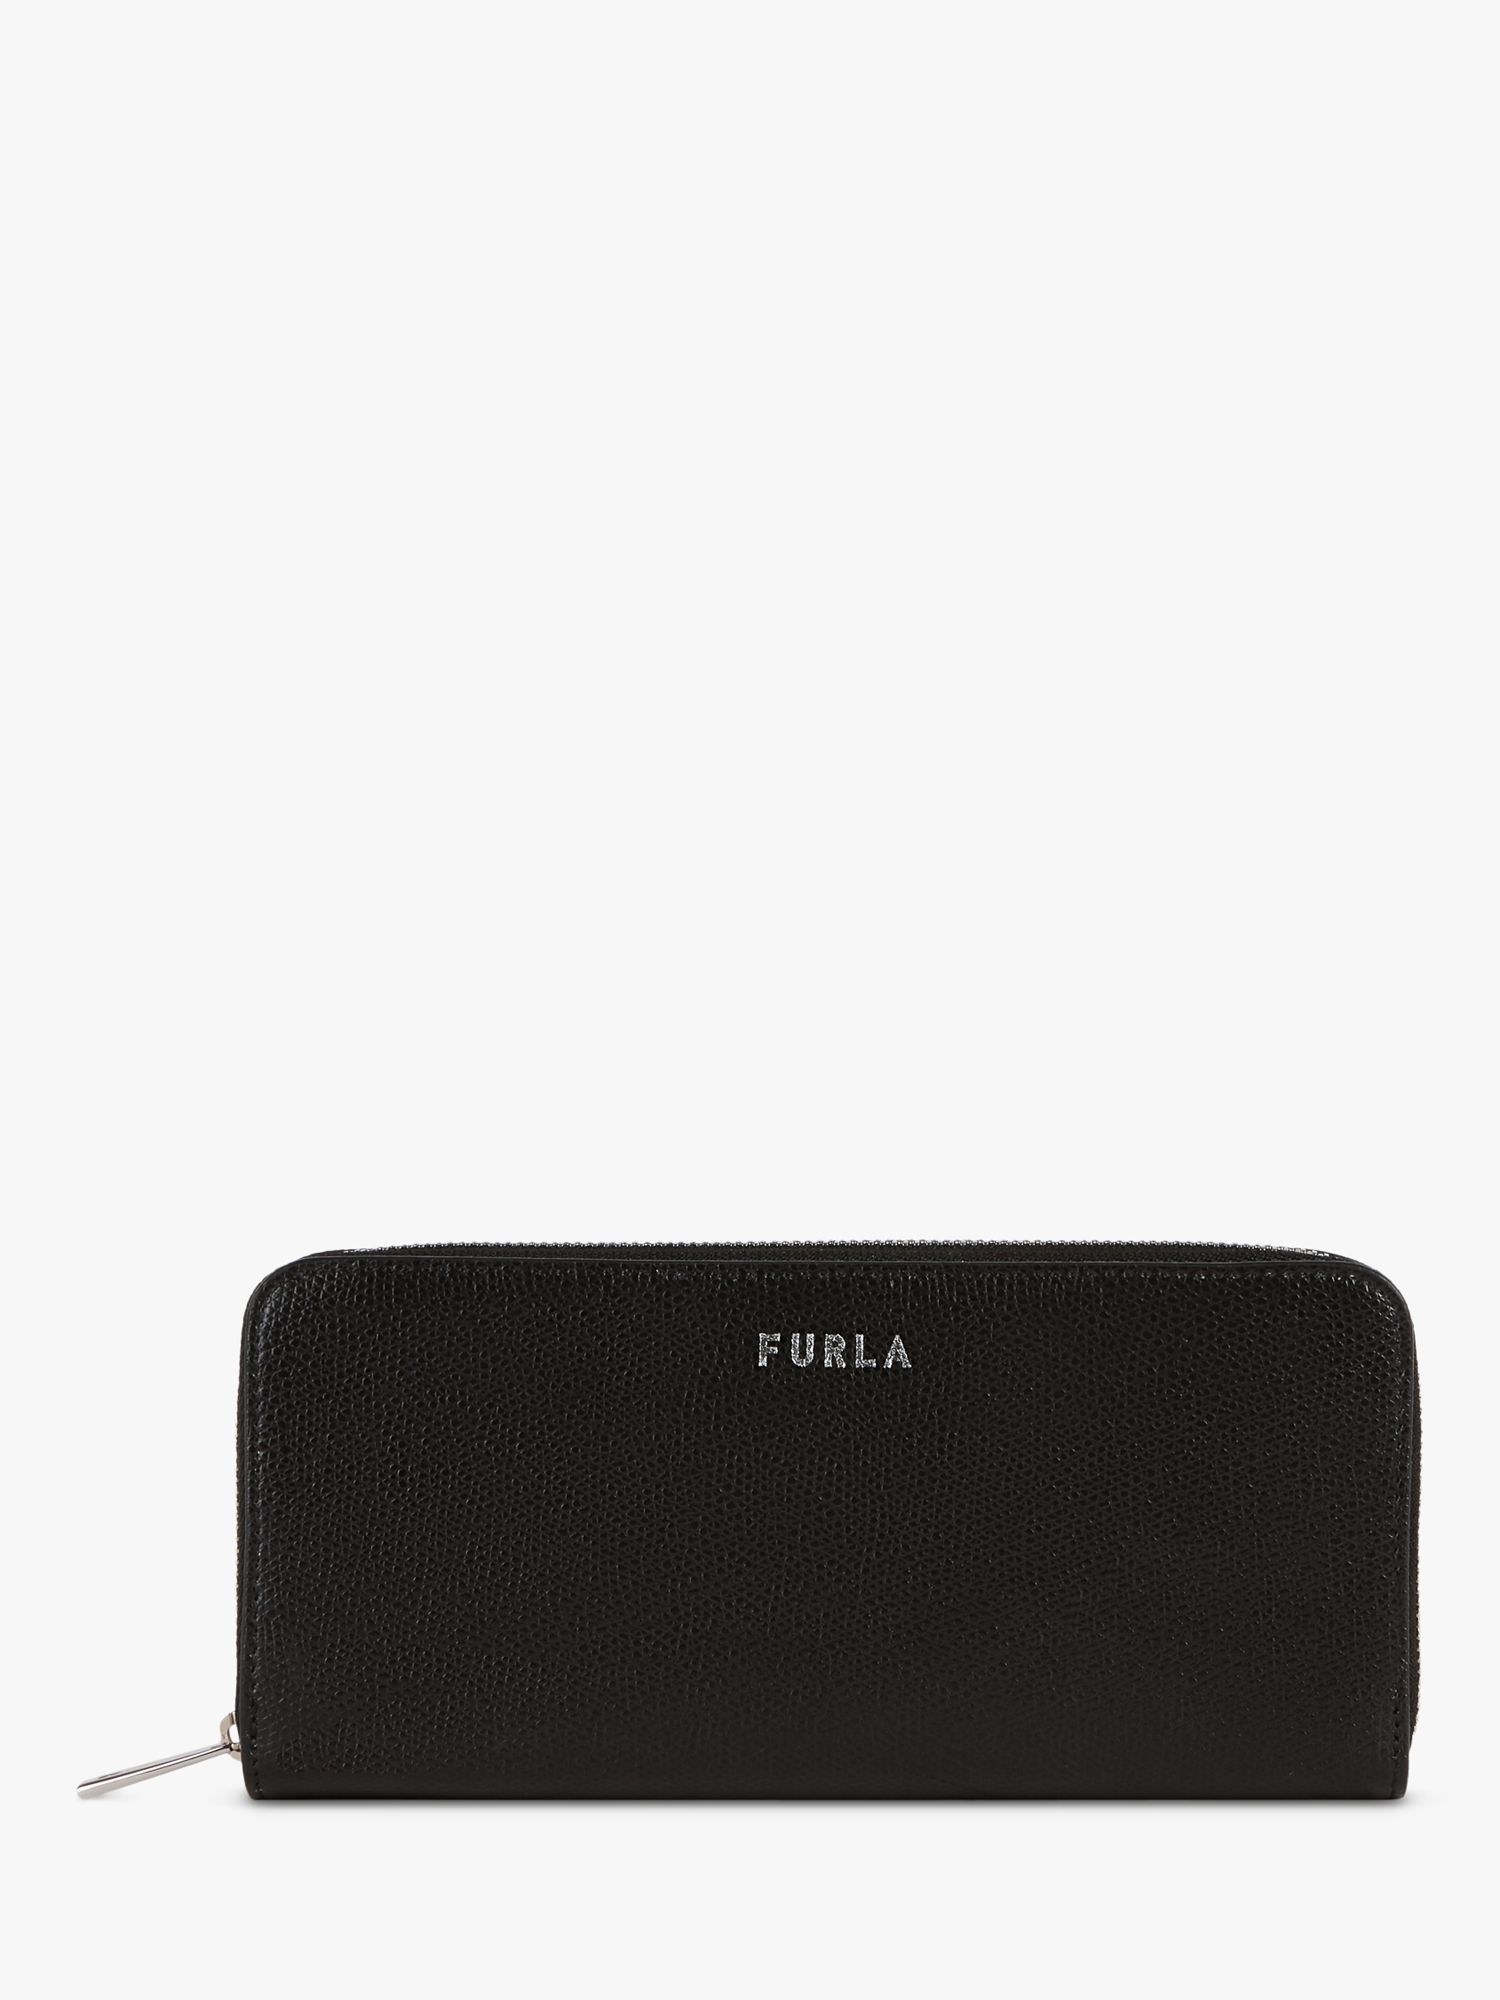 Furla Furla Next Leather Zip Around Purse